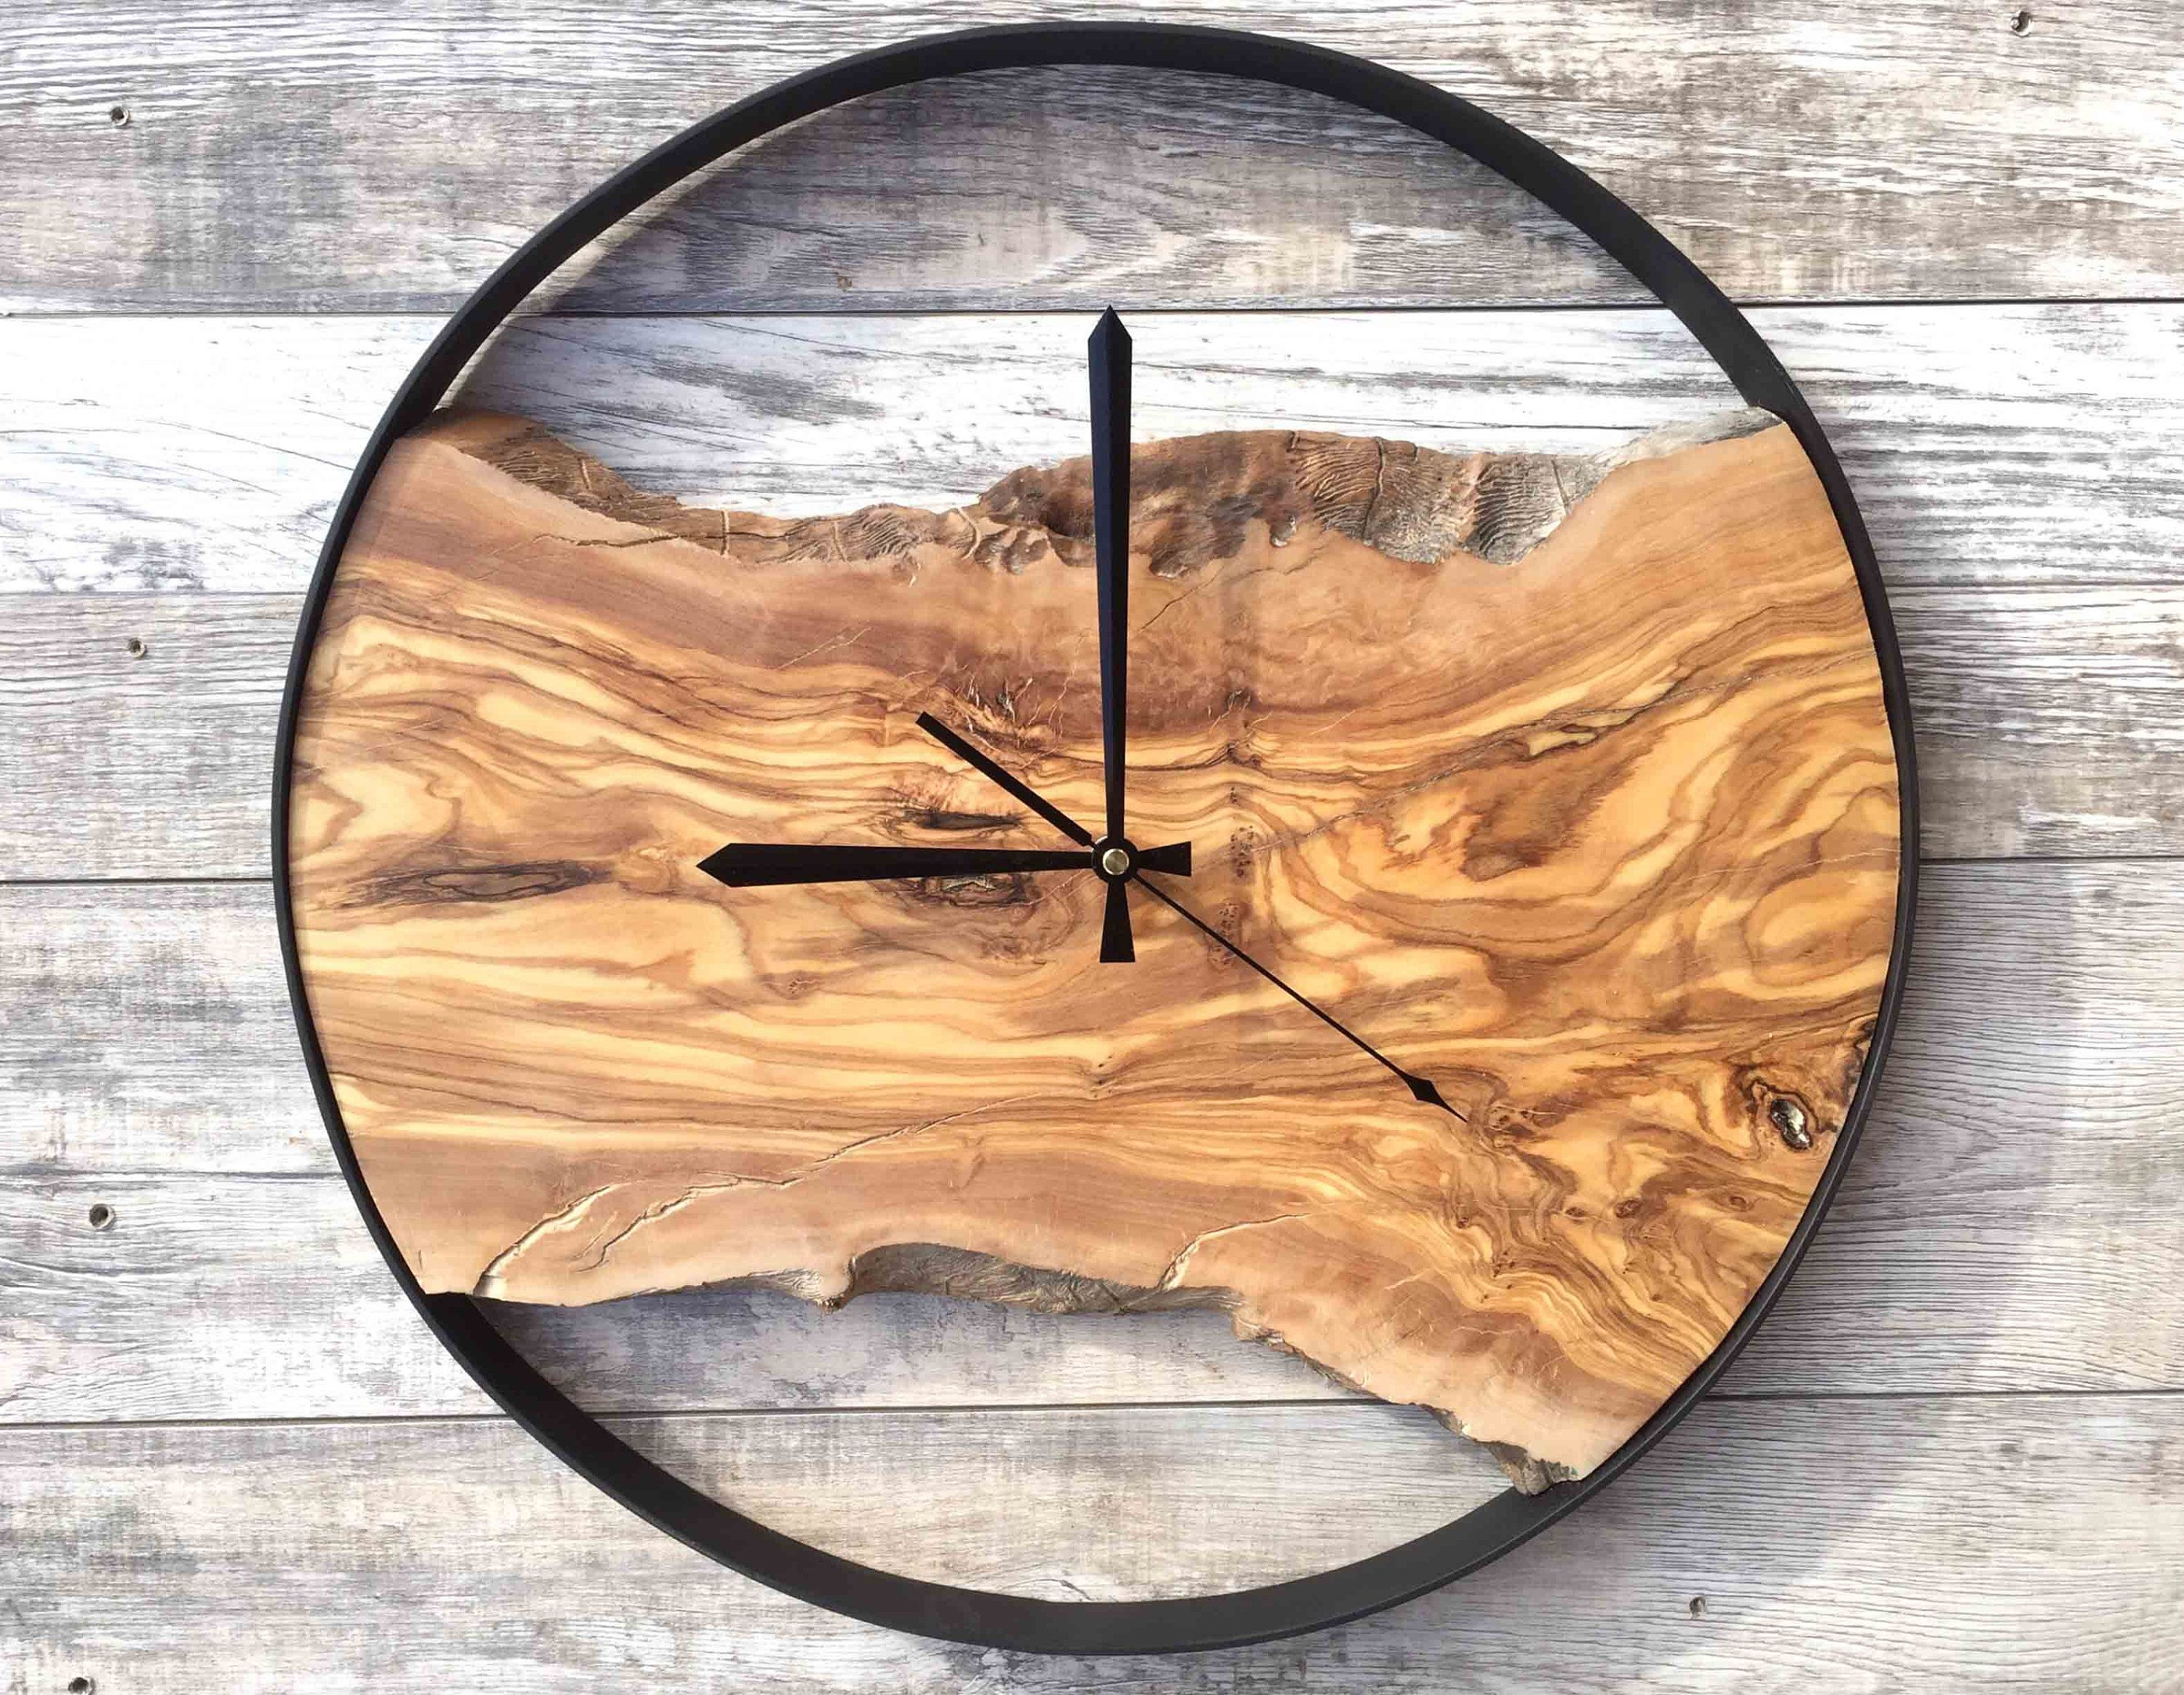 Clocks For Wall Wooden Wall Clock Wood Wall Clock Modern Wood Clock Large Clock Wall Unique Wall Clock Wood Live Edge Wood Wall Clock Wood Clocks Wood Clock Design